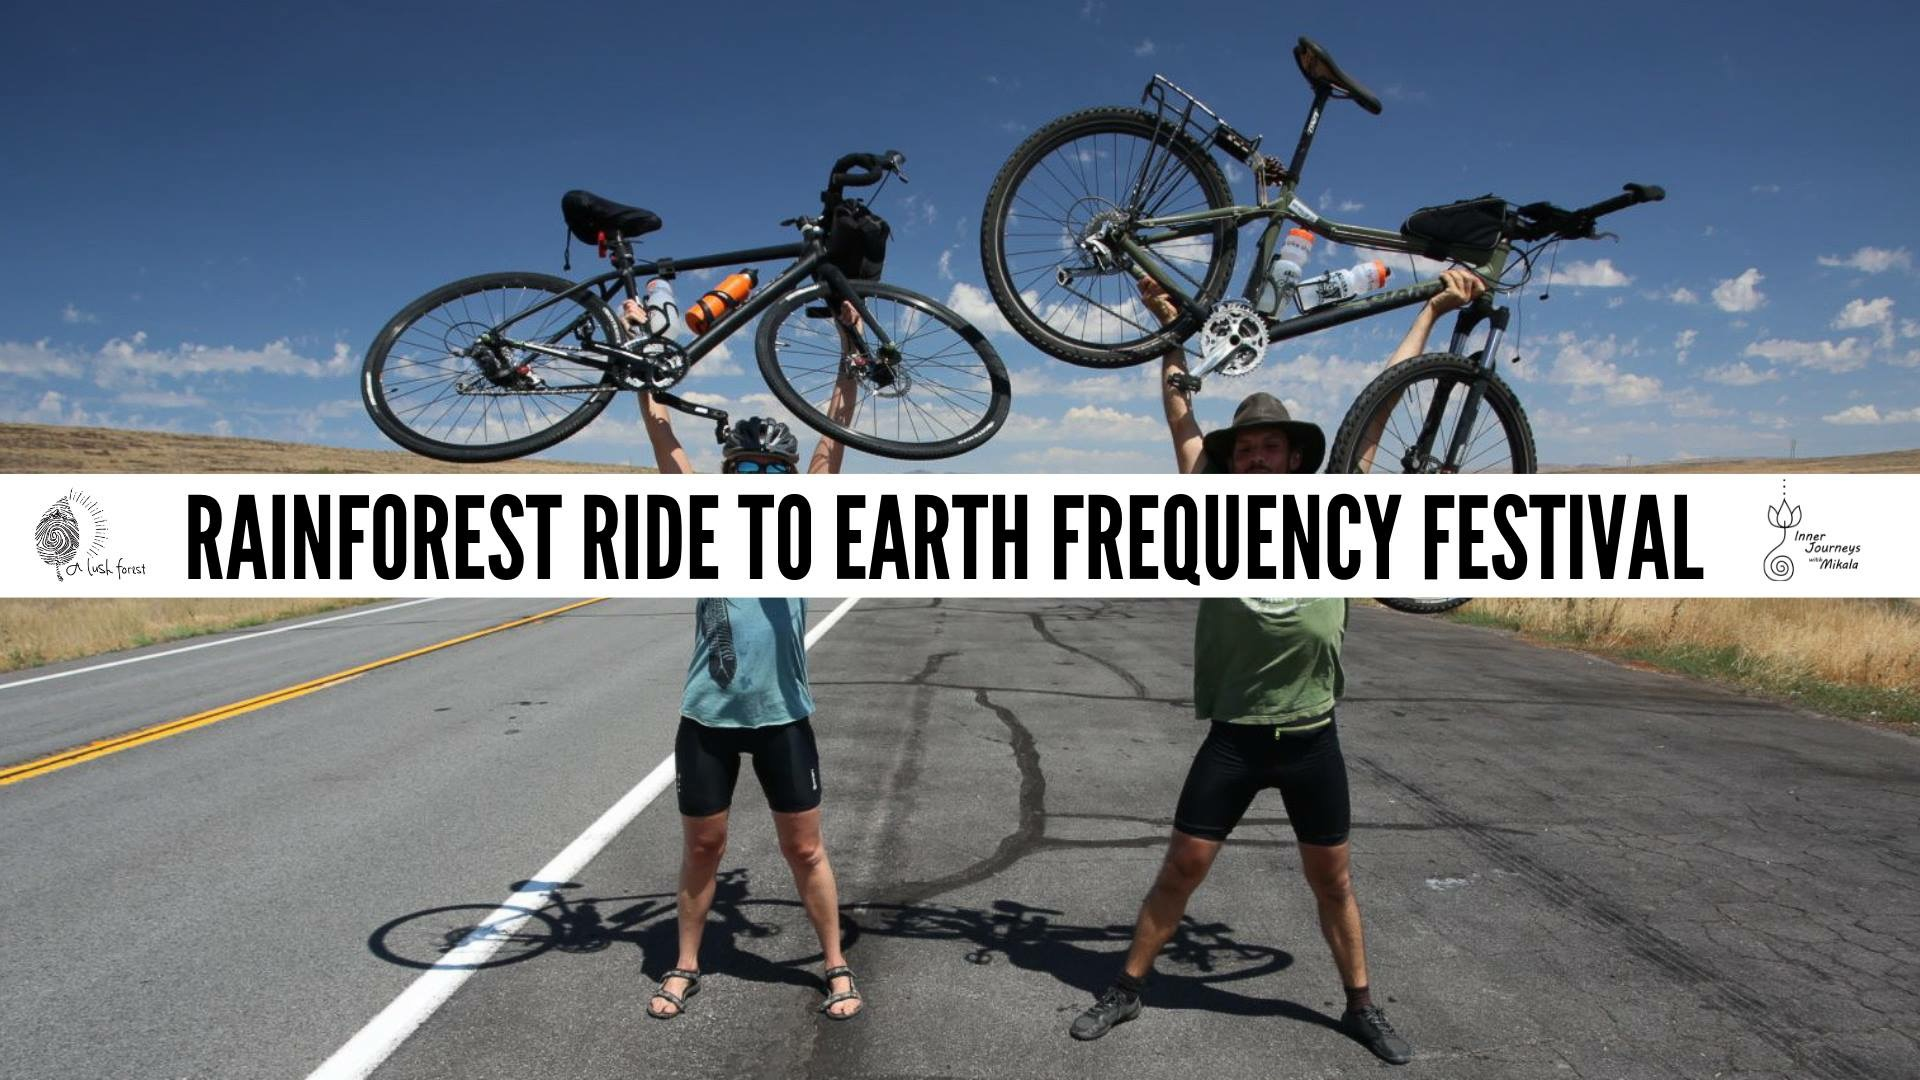 Rainforest Ride to Earth Frequency Festival